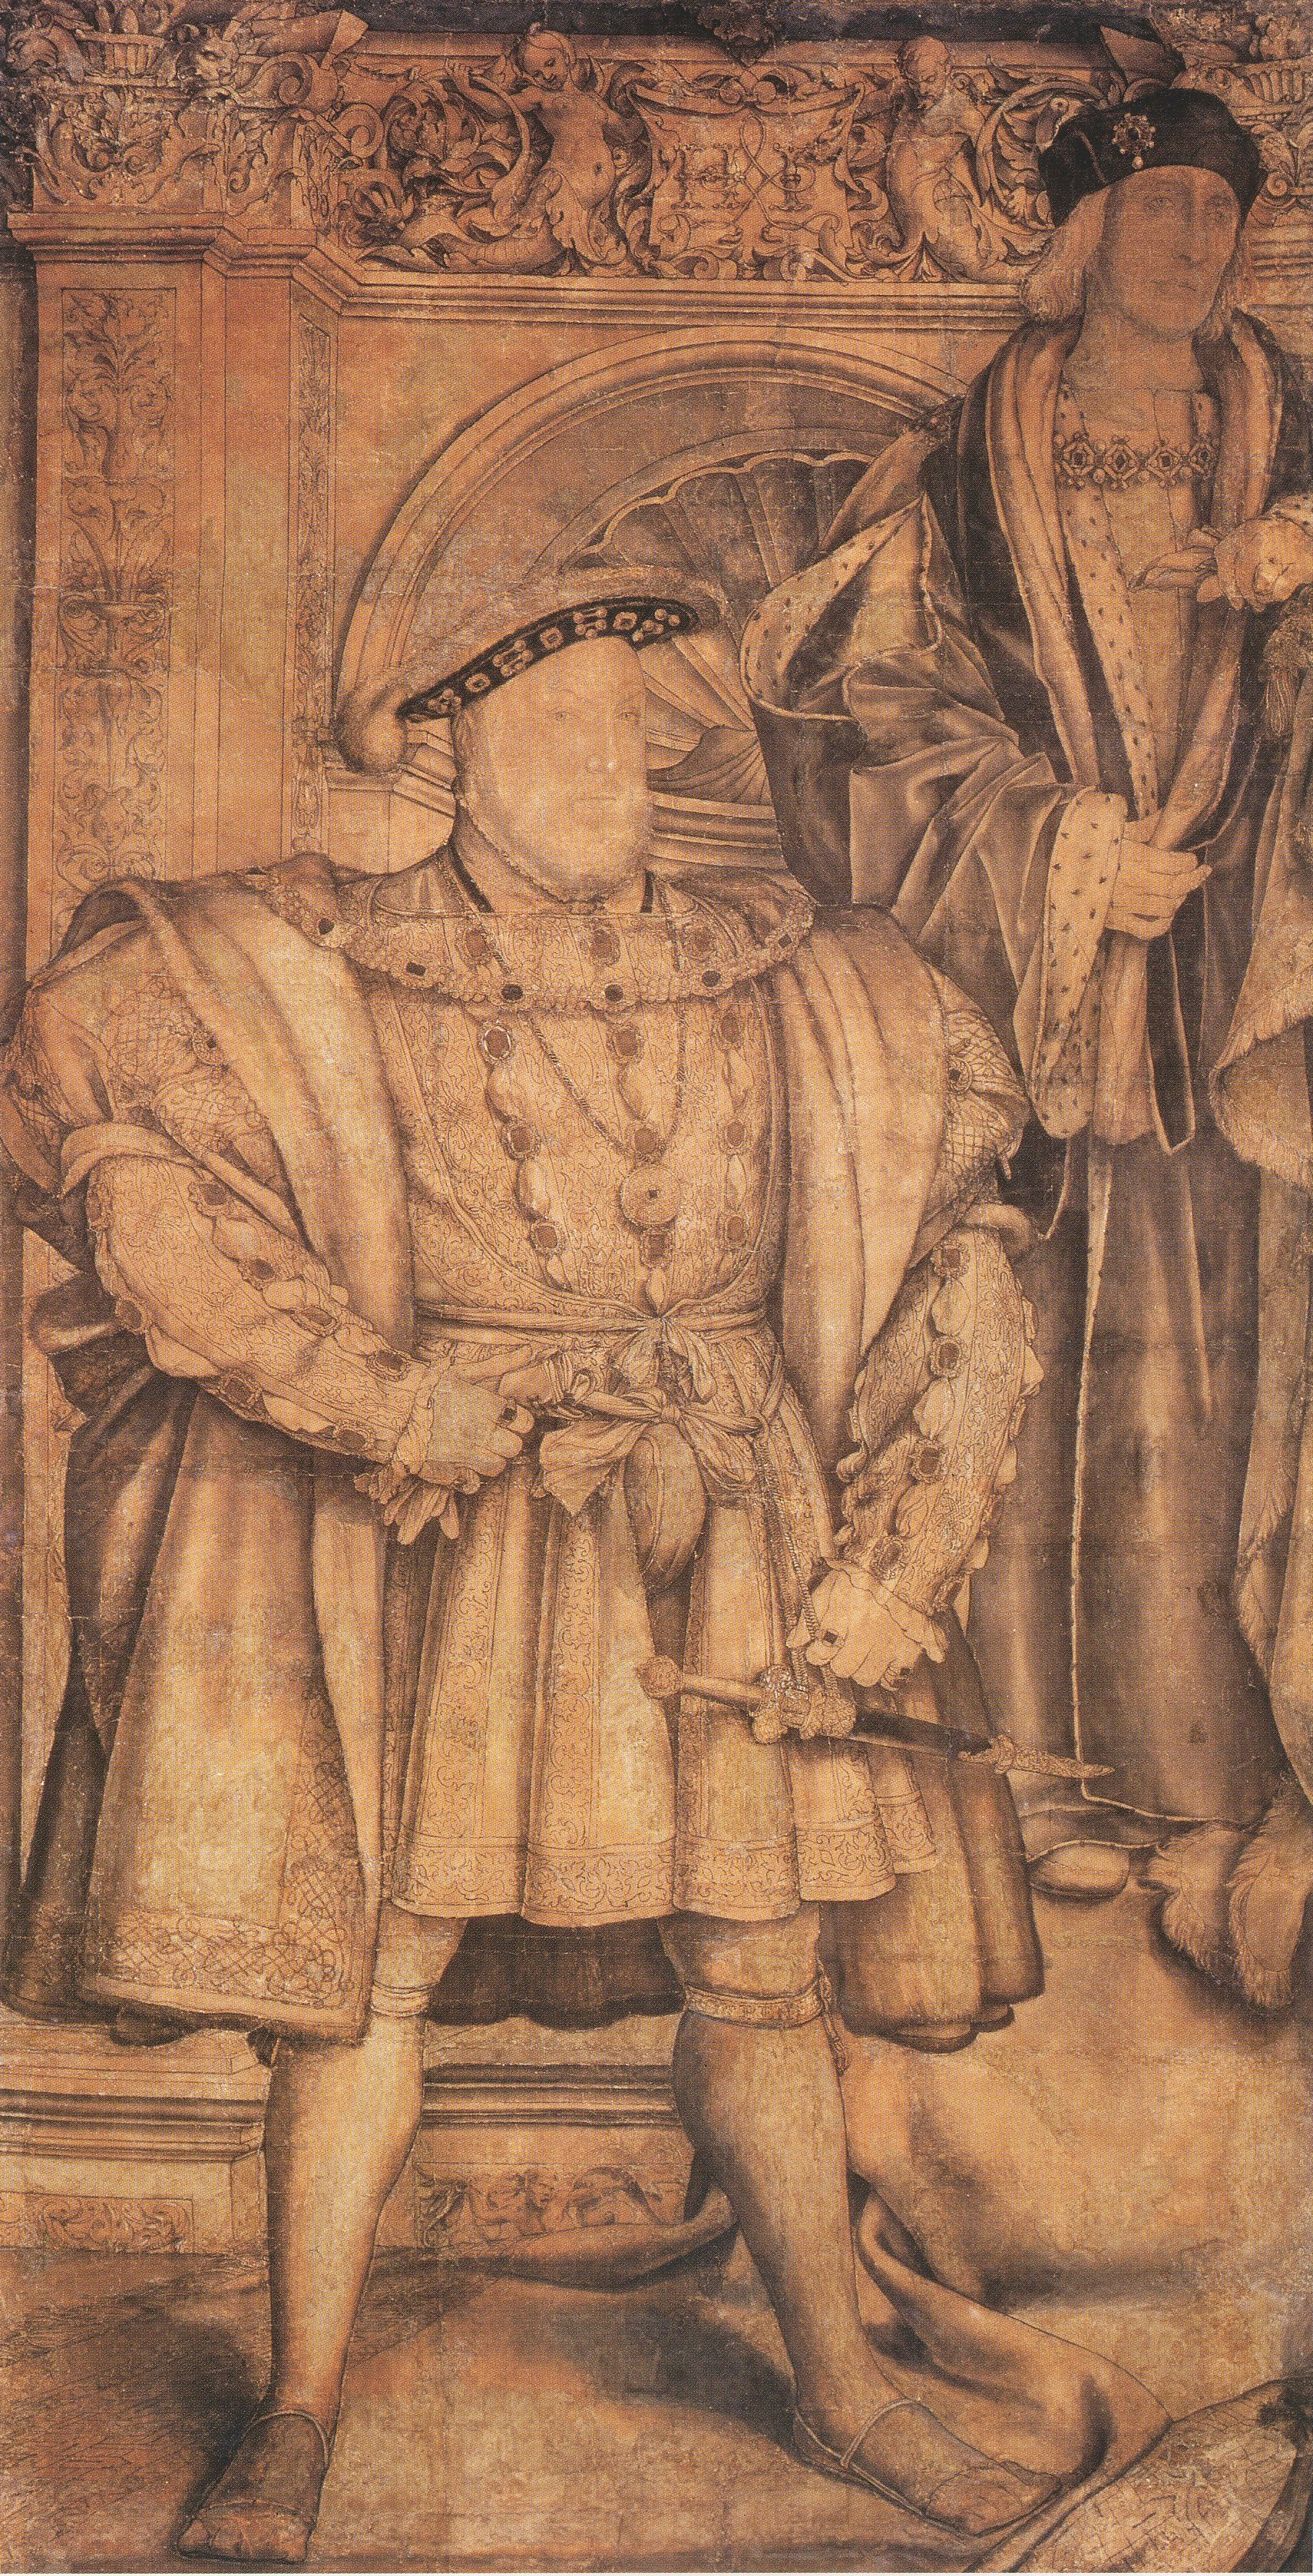 henry viii essay best images about ~royalty henry viii s time  king henry viii henry viii and henry vii by hans holbein the younger jpg